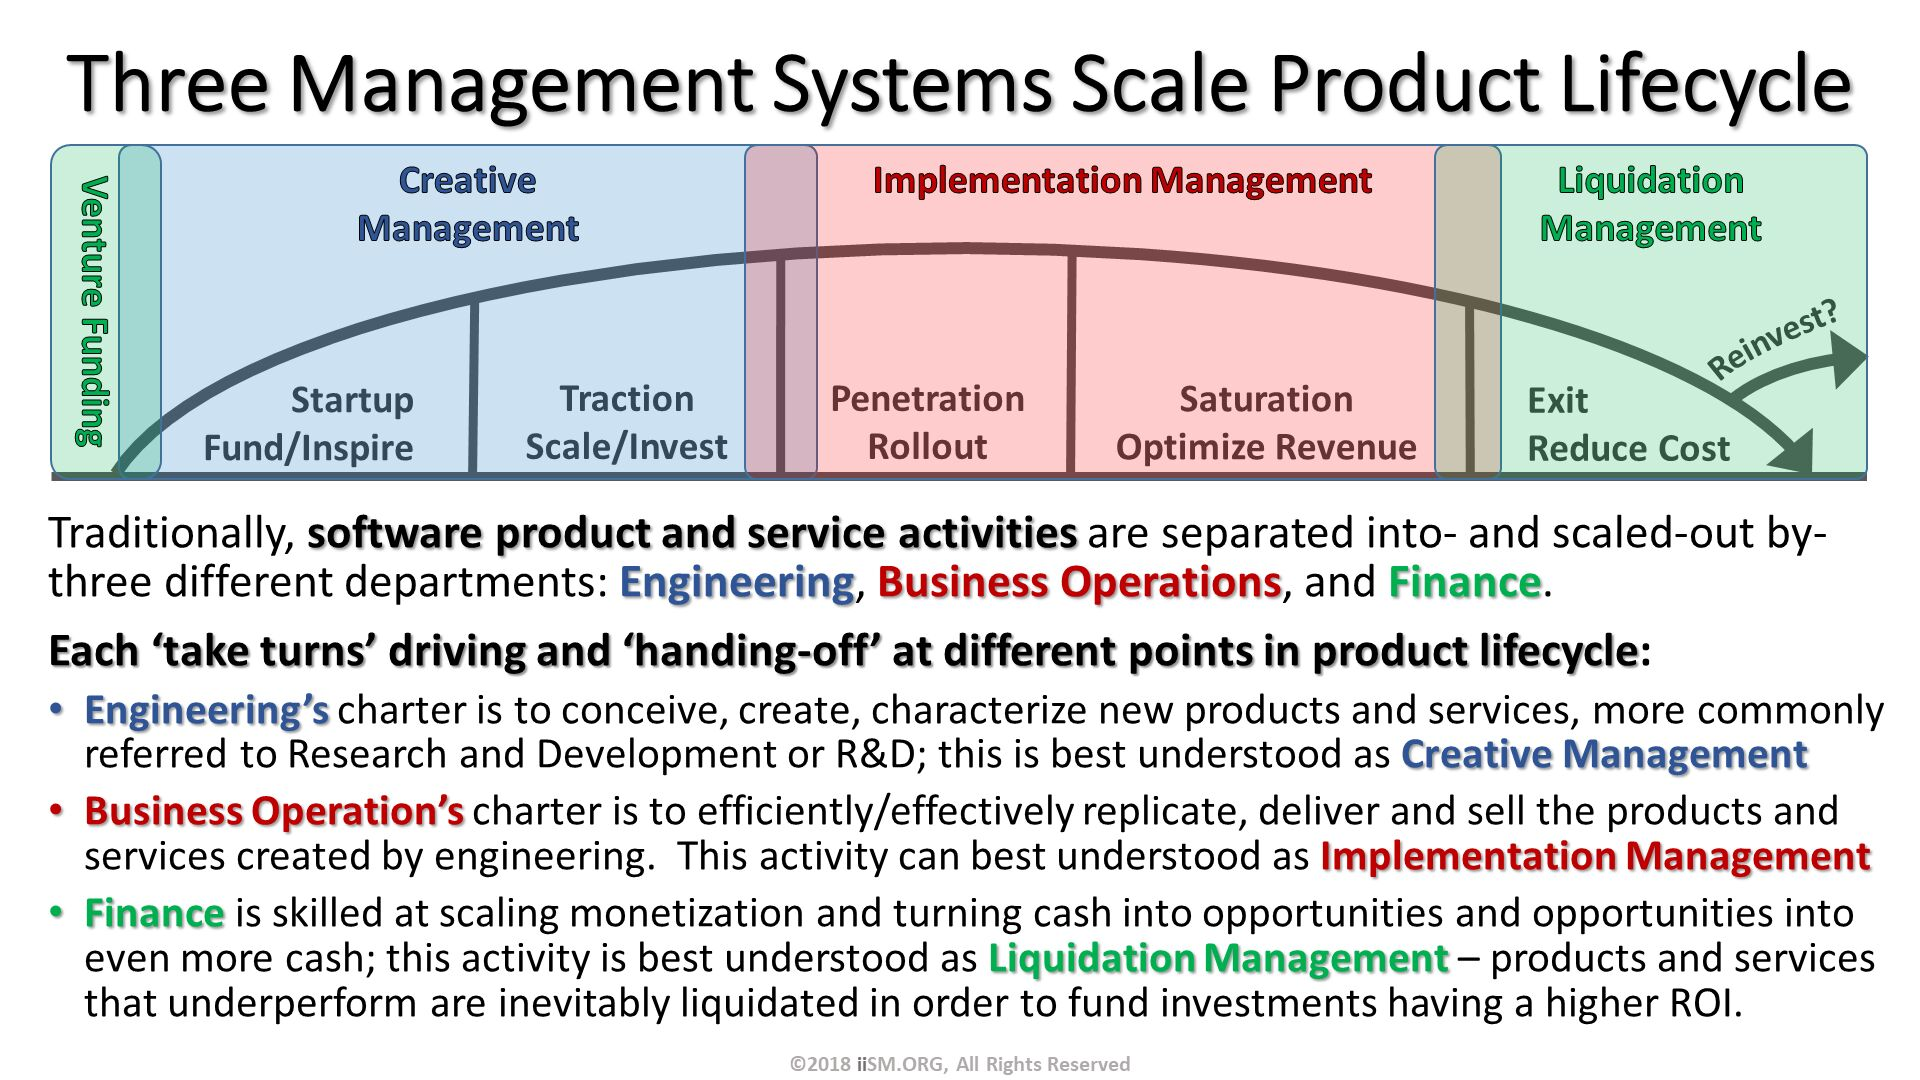 Three Management Systems Scale Product Lifecycle. Traditionally, software product and service activities are separated into- and scaled-out by- three different departments: Engineering, Business Operations, and Finance.   Each 'take turns' driving and 'handing-off' at different points in product lifecycle: Engineering's charter is to conceive, create, characterize new products and services, more commonly referred to Research and Development or R&D; this is best understood as Creative Management Business Operation's charter is to efficiently/effectively replicate, deliver and sell the products and services created by engineering.  This activity can best understood as Implementation Management Finance is skilled at scaling monetization and turning cash into opportunities and opportunities into even more cash; this activity is best understood as Liquidation Management – products and services that underperform are inevitably liquidated in order to fund investments having a higher ROI. ©2018 iiSM.ORG, All Rights Reserved.